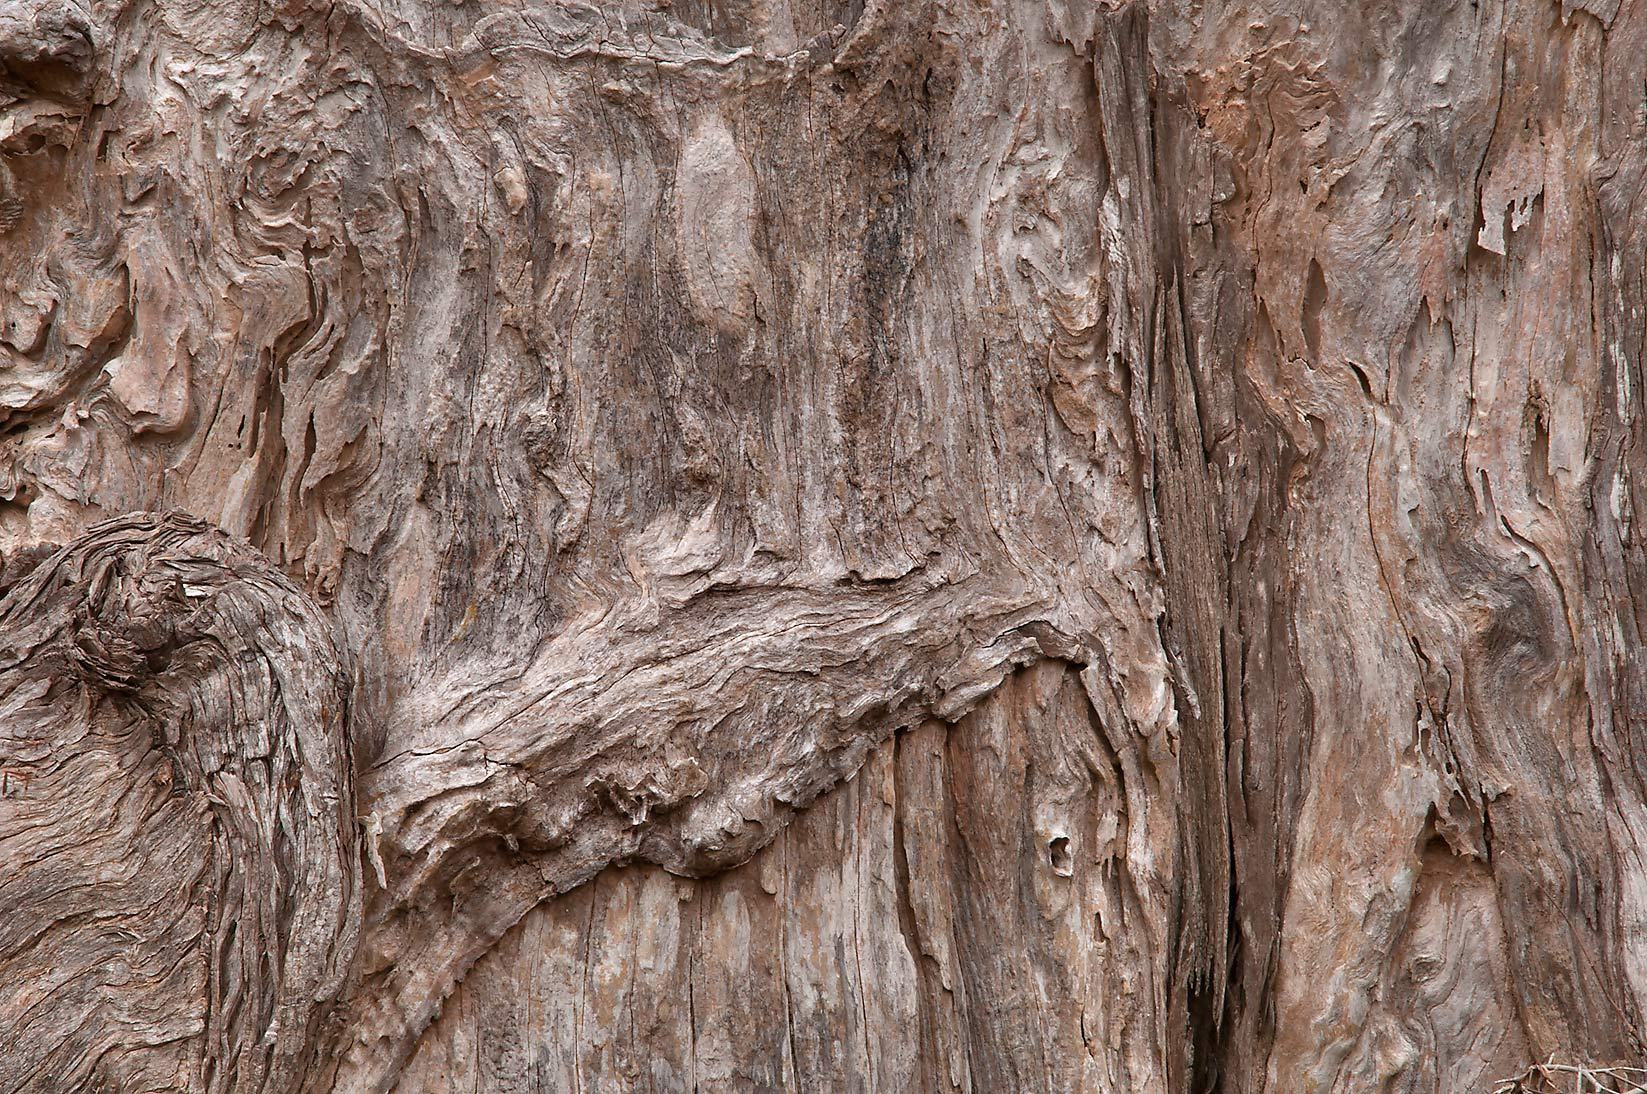 Texture of cypress tree stump in Hamilton Pool Preserve, west from Austin. Texas